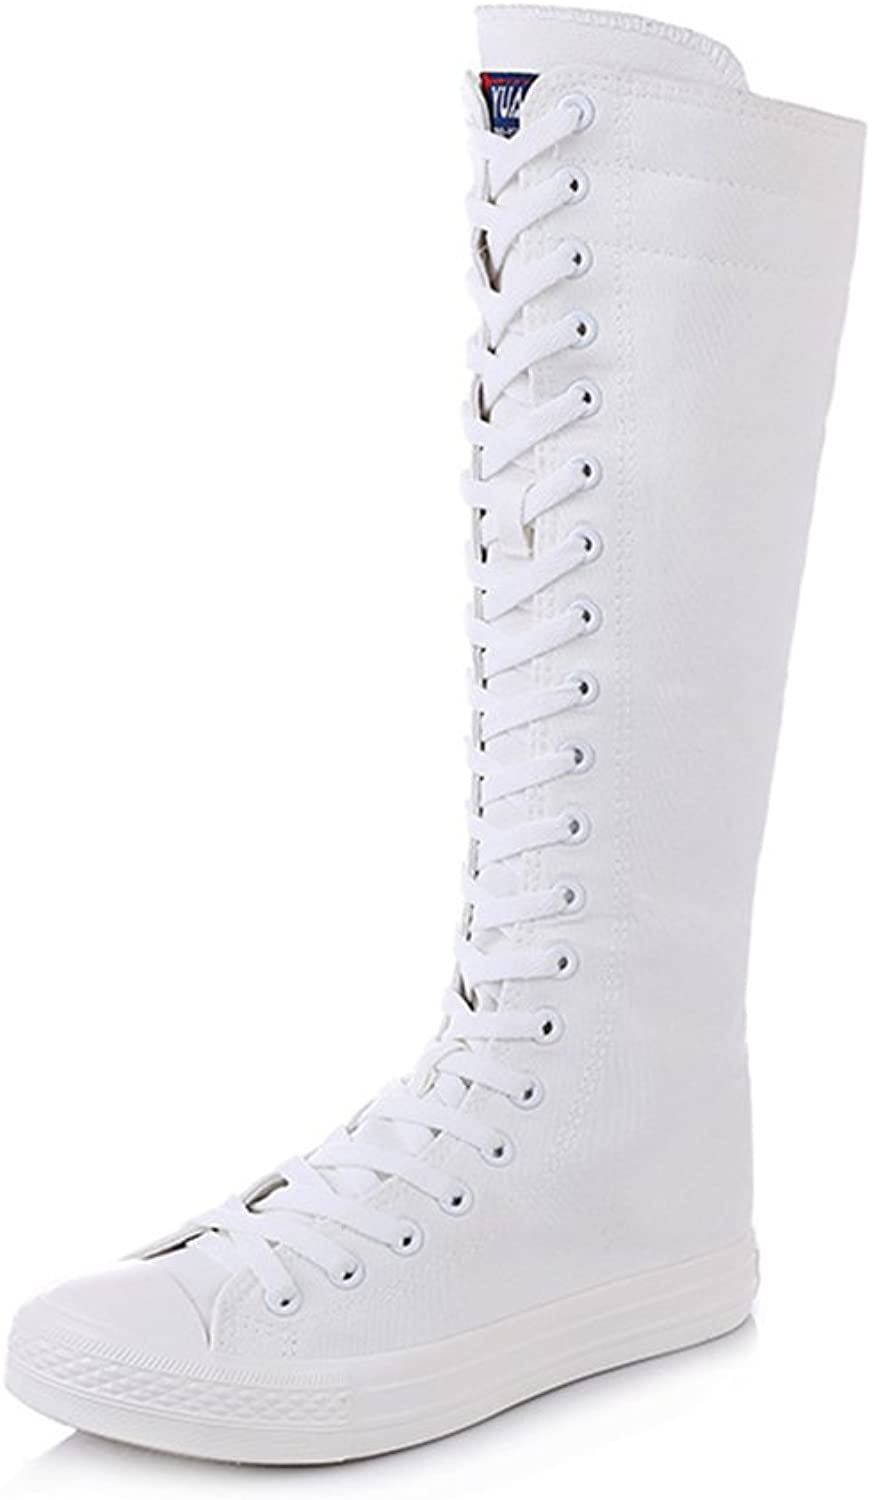 Stay real Women Fashion Canvas Dance Boots Knee High Boots Girls Tall Punk shoes